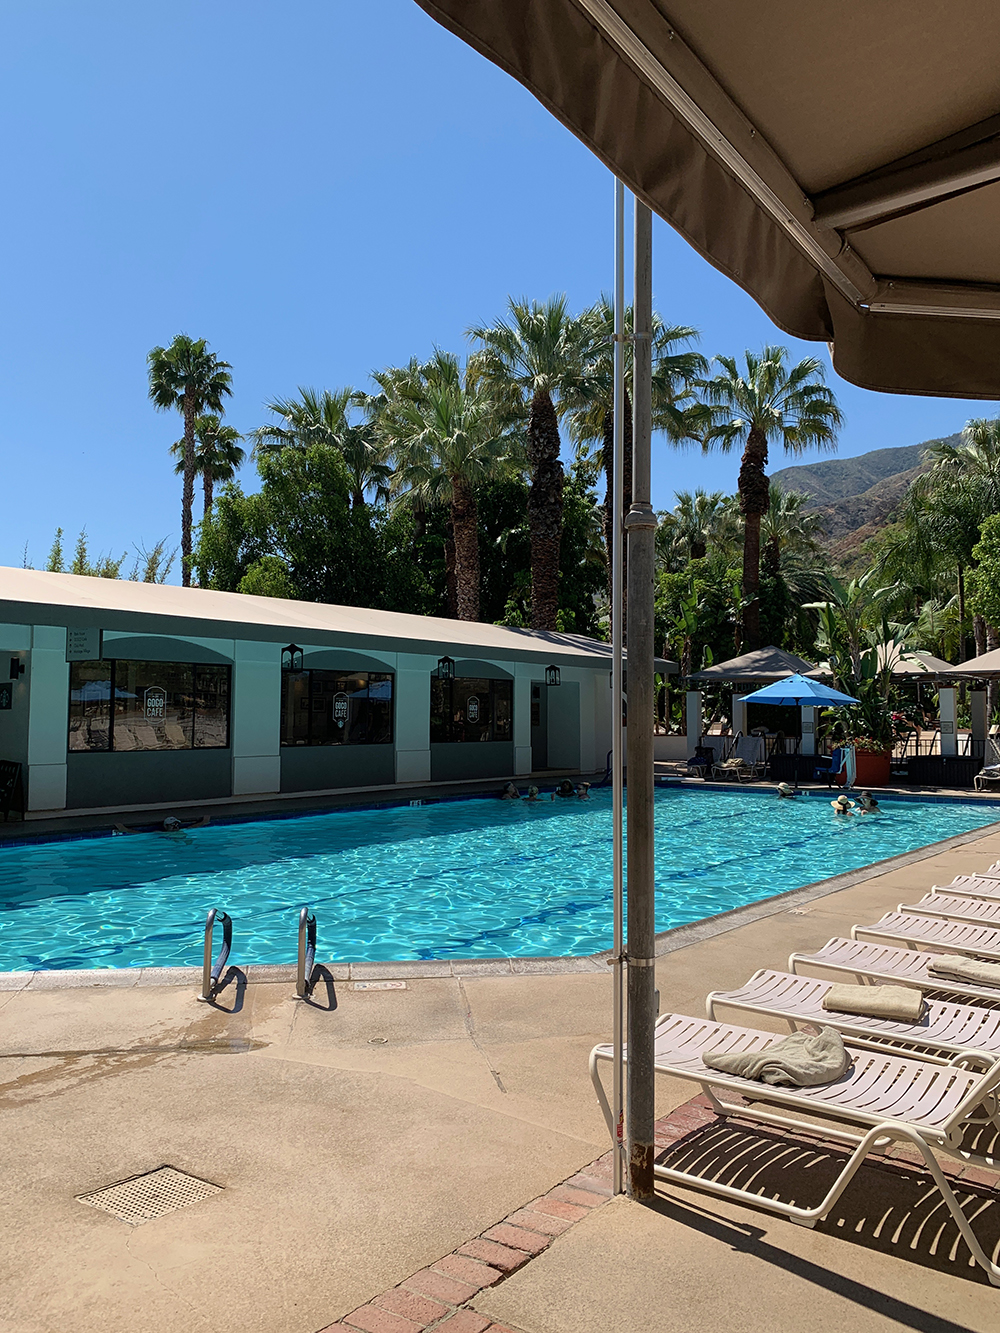 The Lap Pool offers an array of fitness and exercise classes.